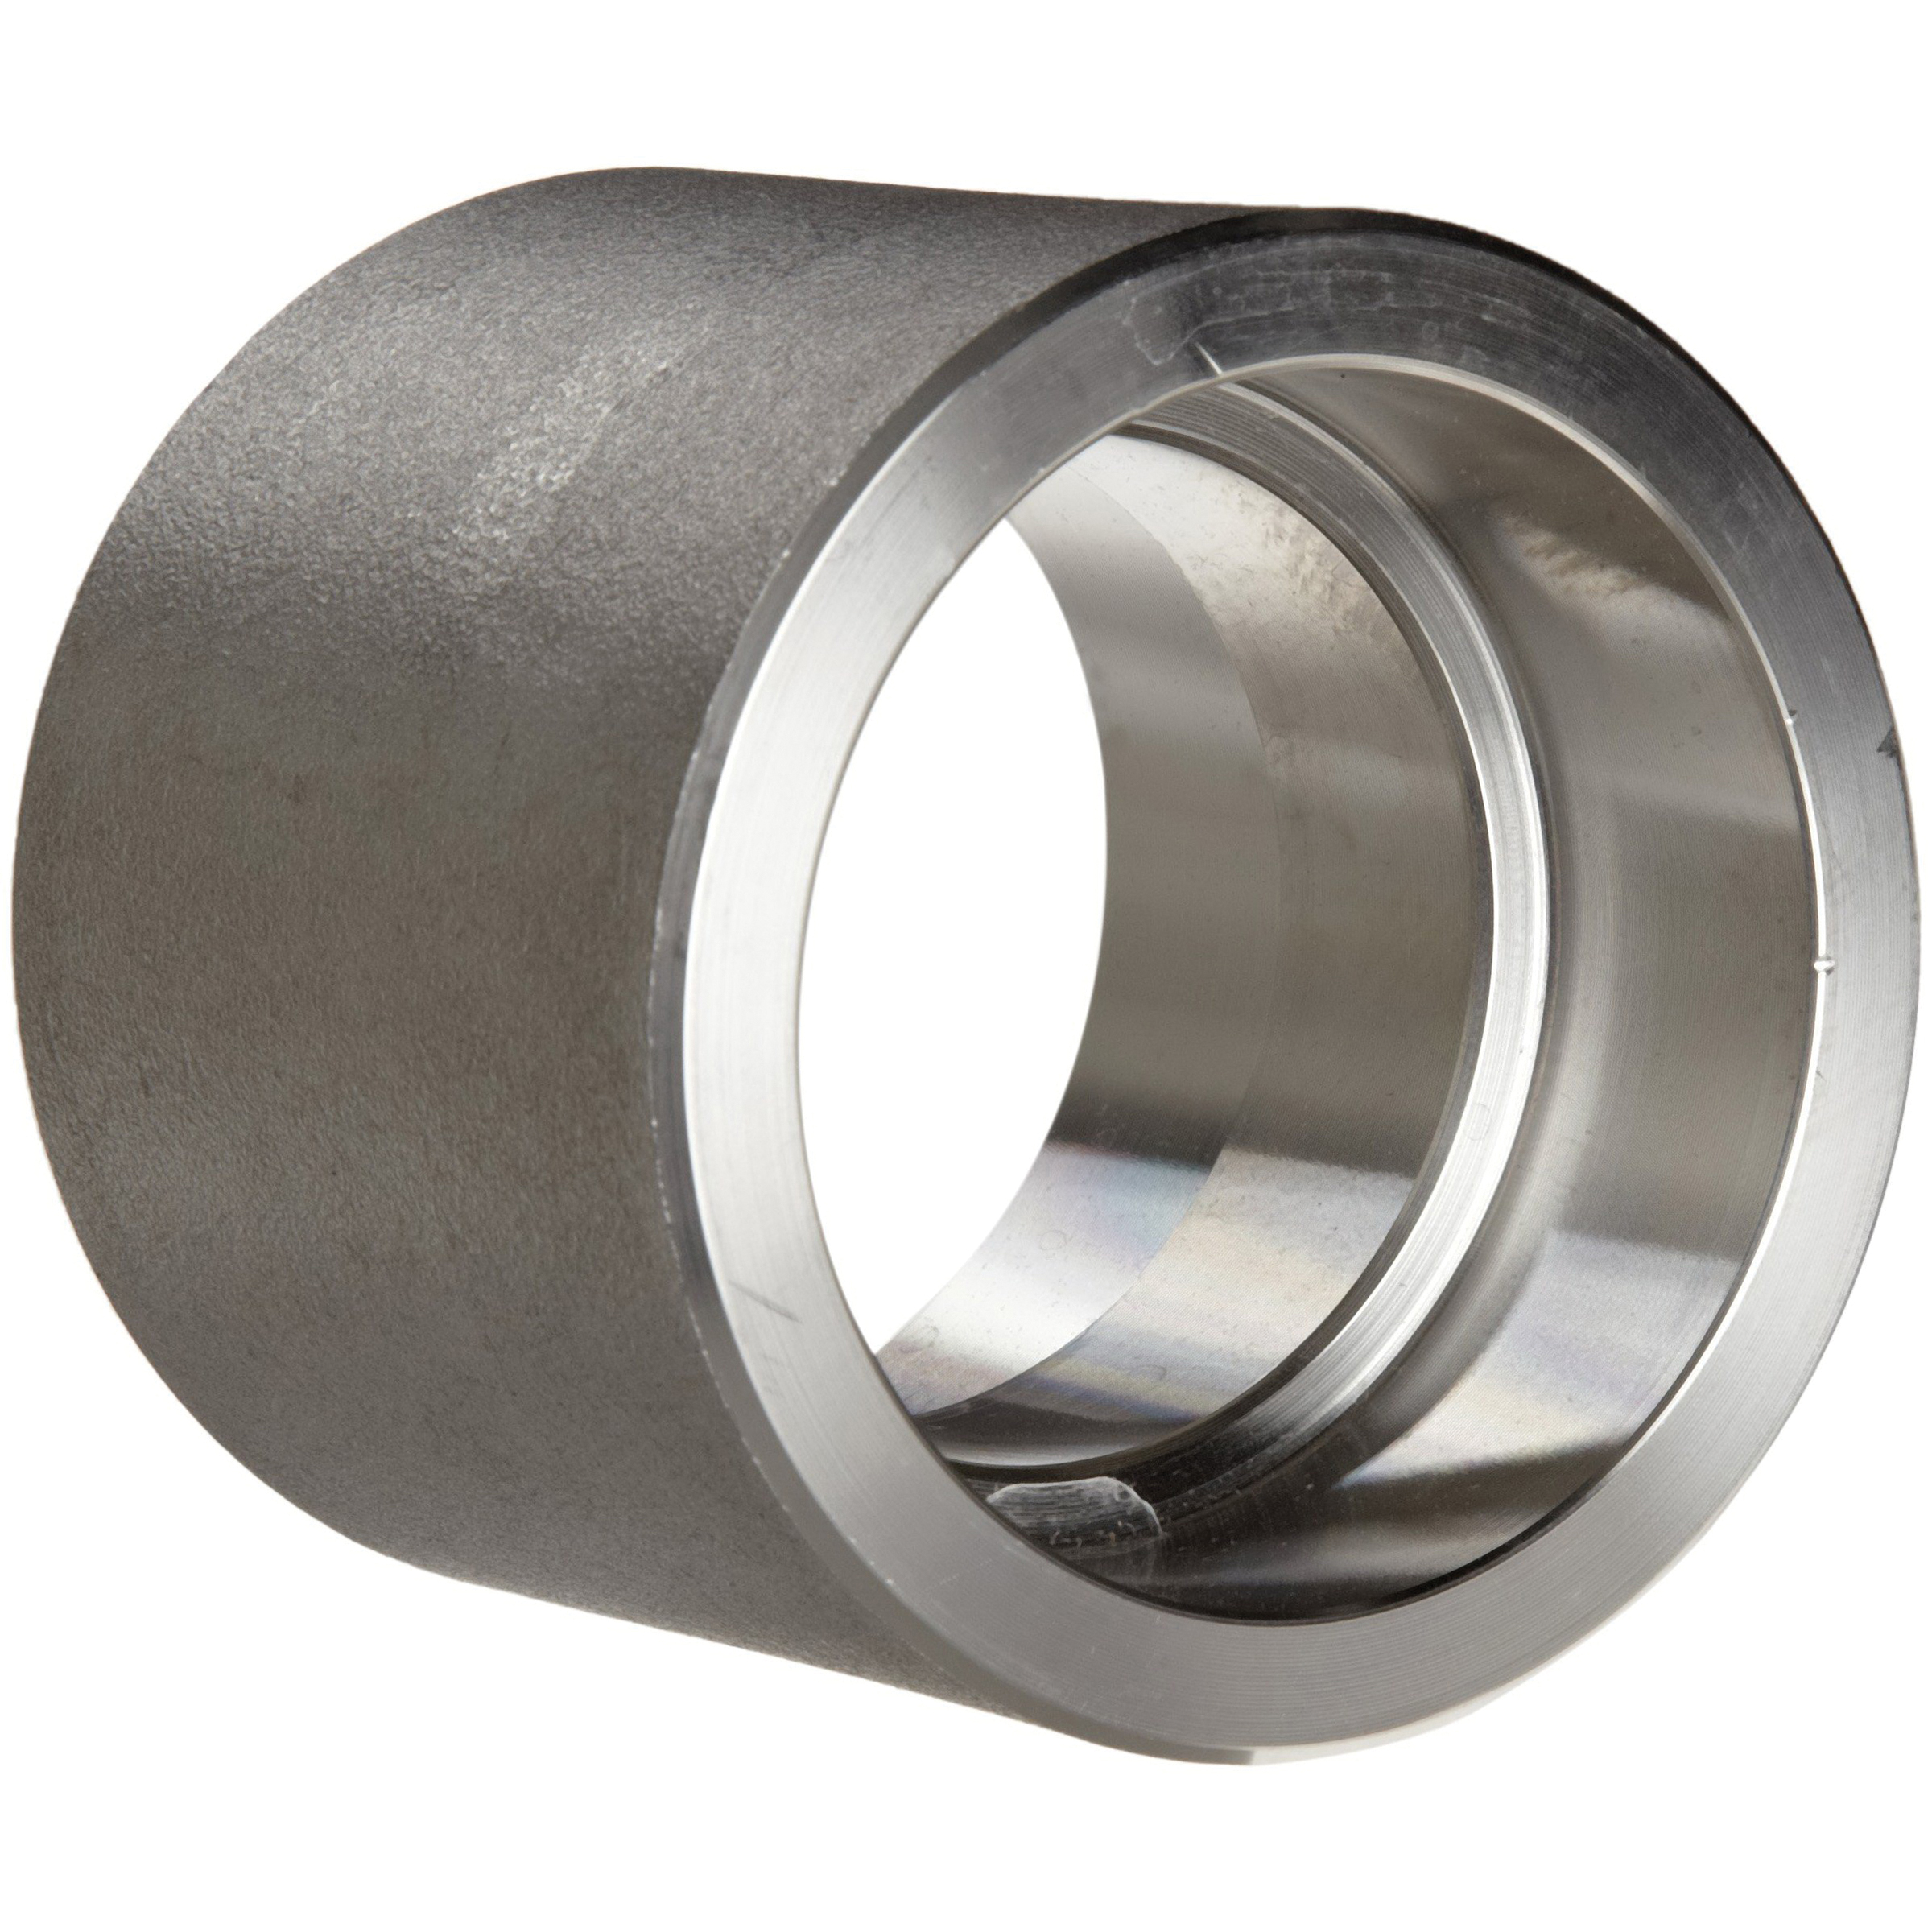 Steel Class 3000 Forged Coupling, Socket Weld, Import